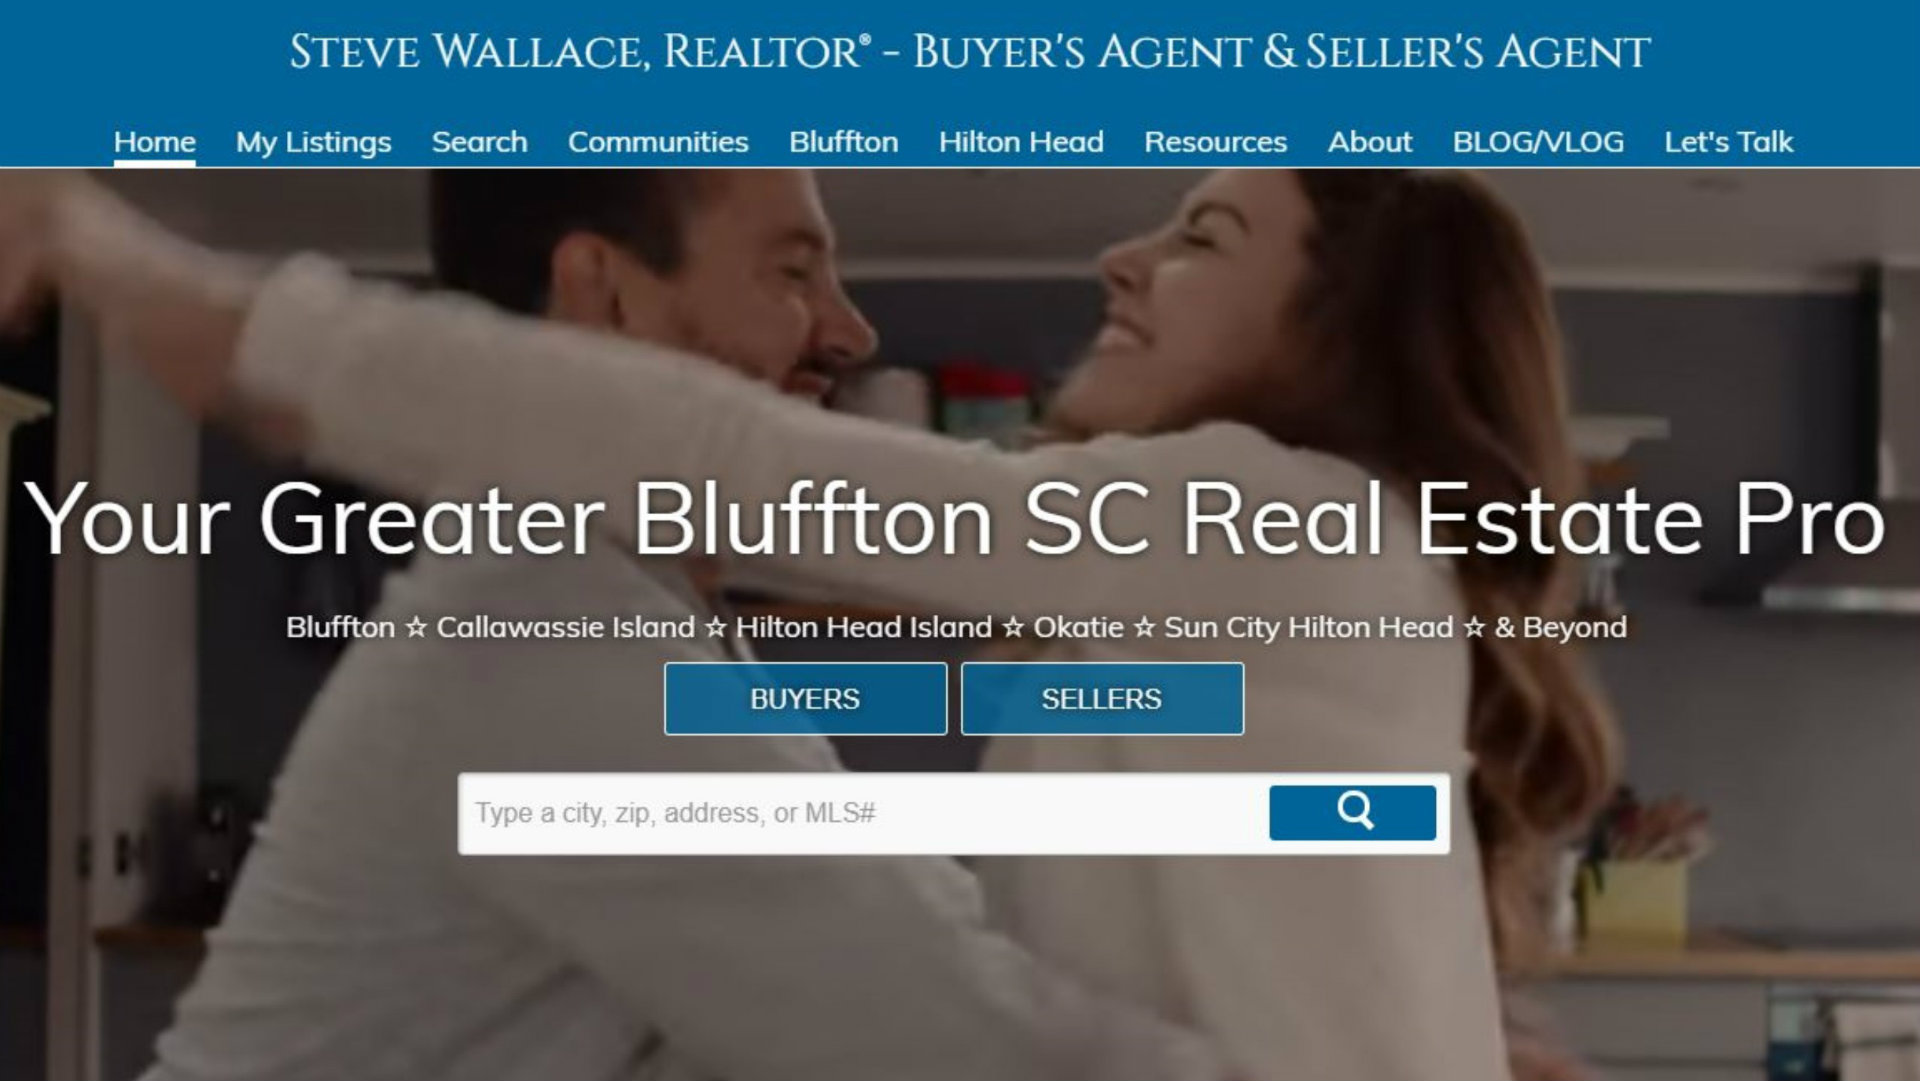 bluffton sc homes for sale, steve wallace, real estate